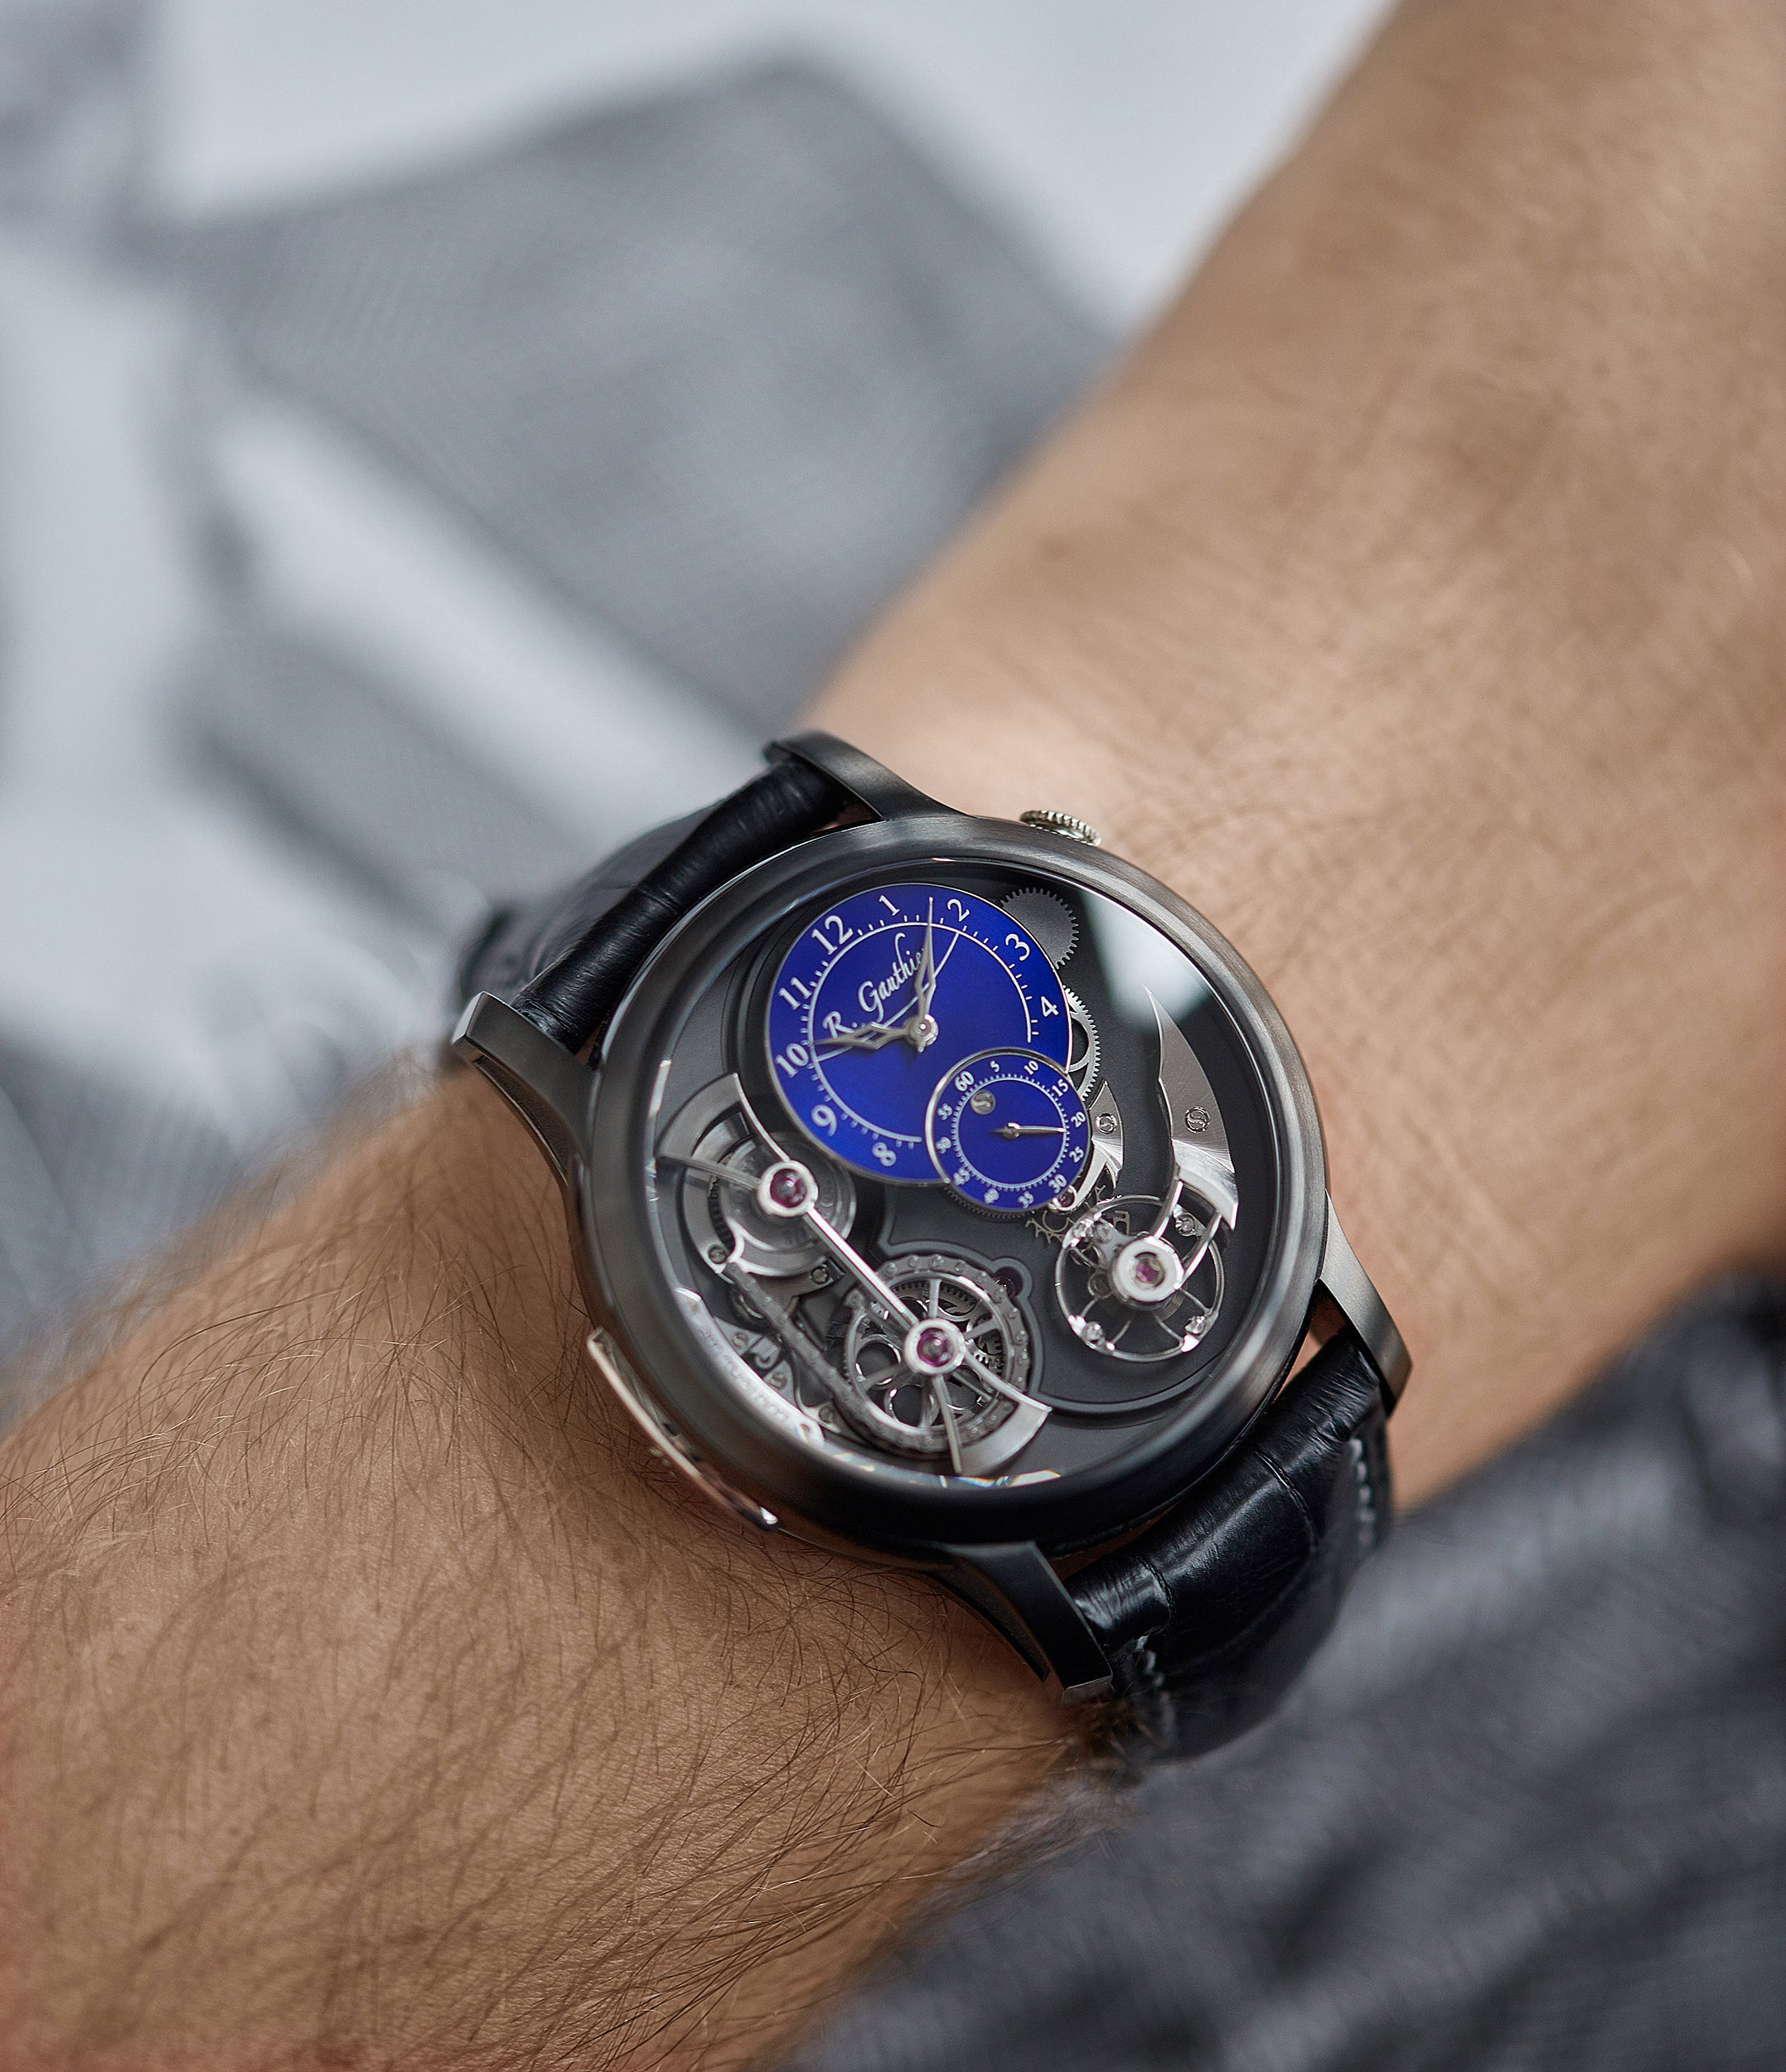 pre-owned Romain Gauthier Limited Edition Logical One BTG titanium watch blue enamel dial for sale online at A Collected Man London UK specialist of independent watchmakers